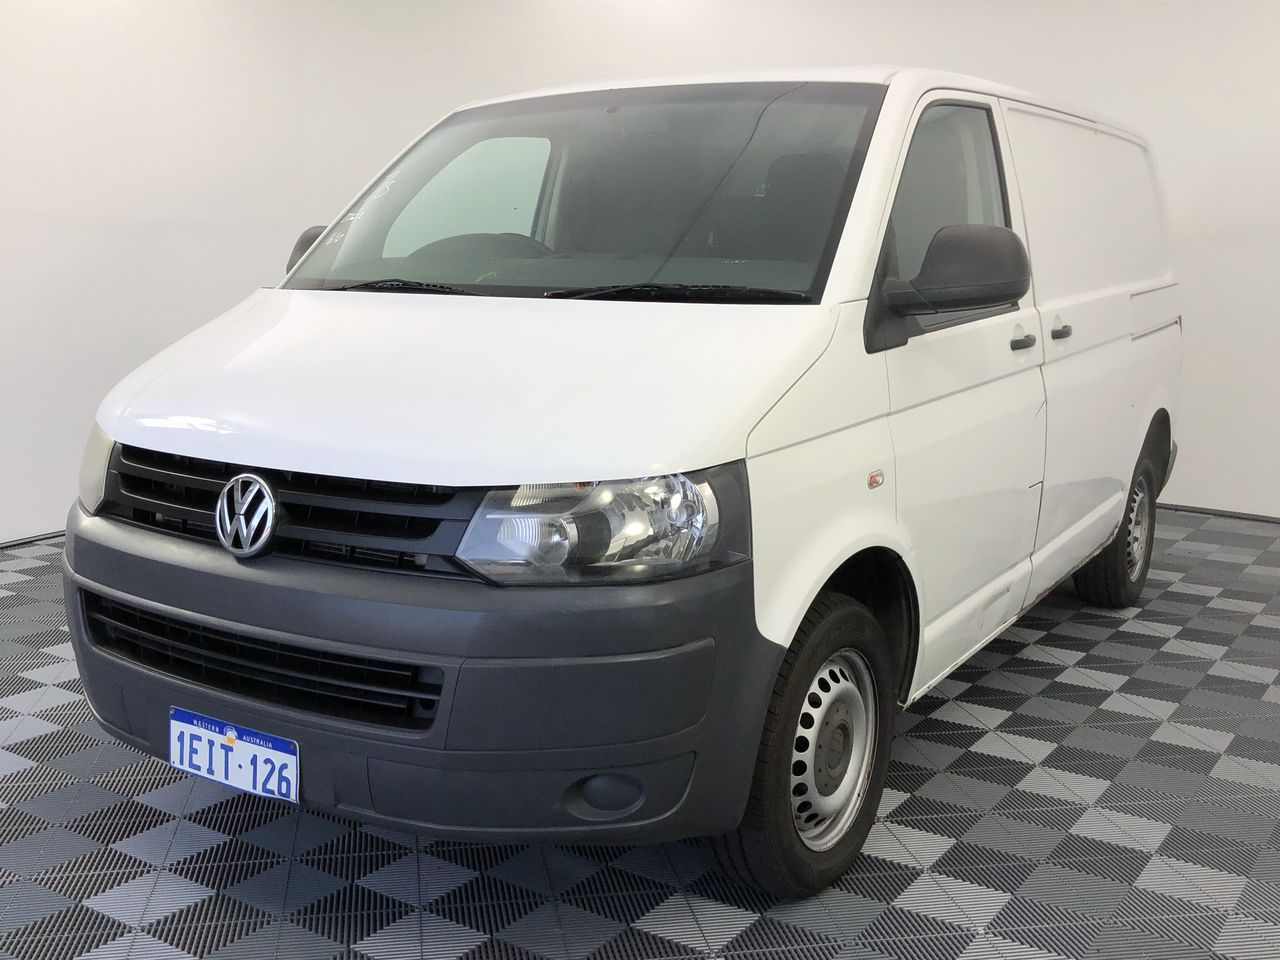 2011 Volkswagen Transporter 103 TDI SWB LOW T5 Turbo Diesel Manual Van